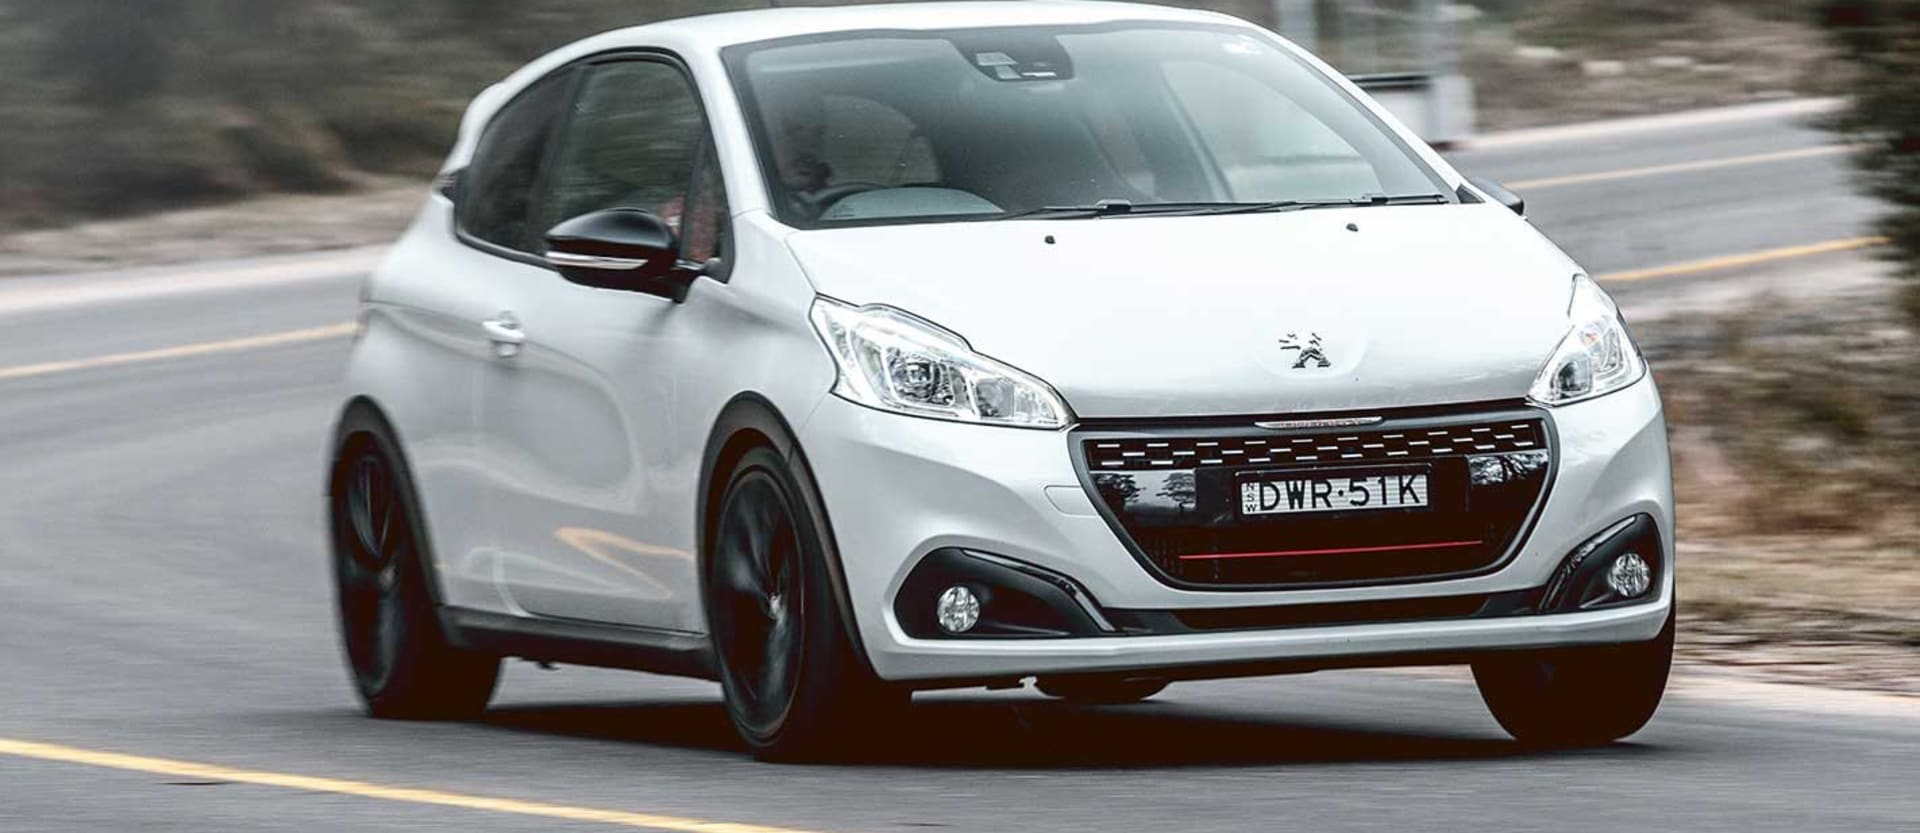 2018 Peugeot 208 GTi Edition Definitive Celebrating drivers cars